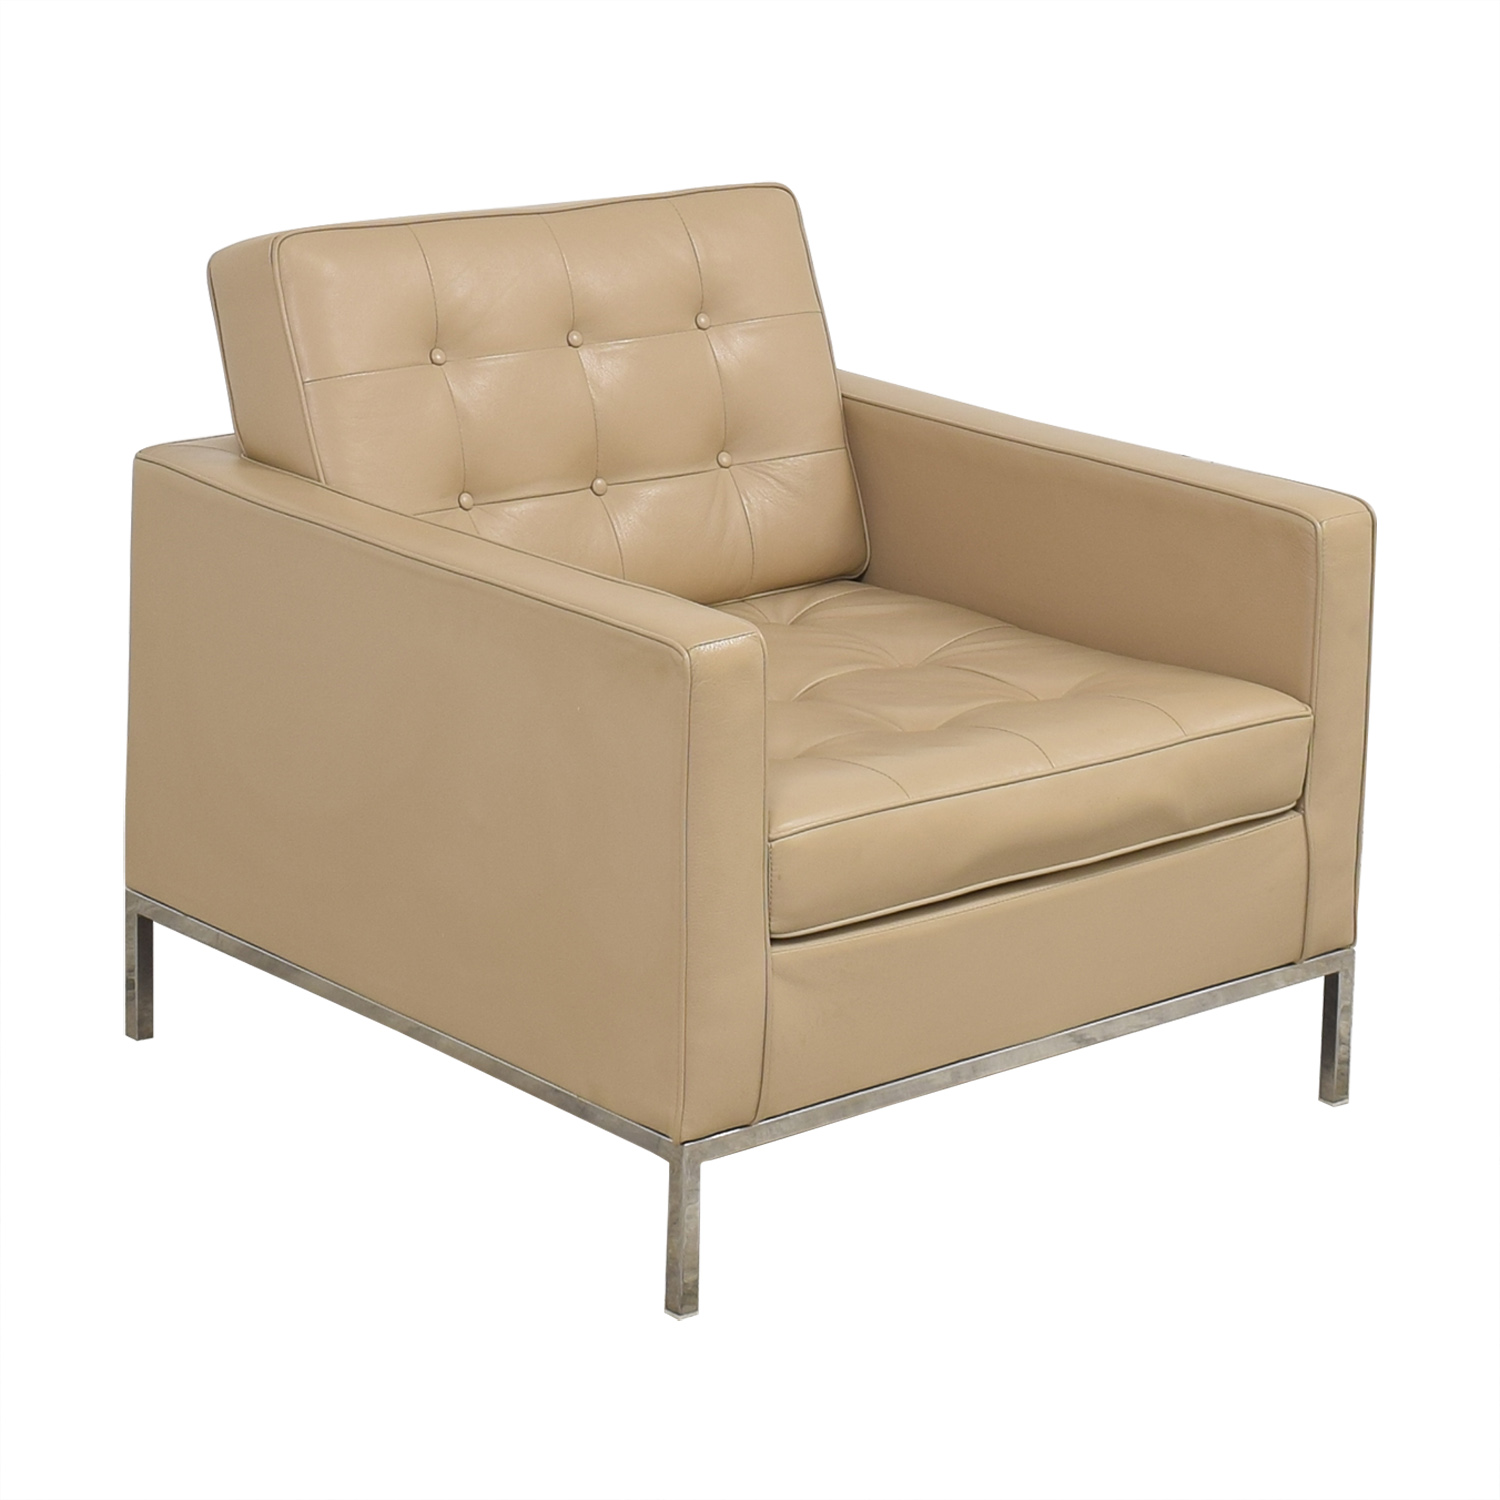 Inmod Inmod Florence Knoll Reproduction Leather Arm Chair coupon